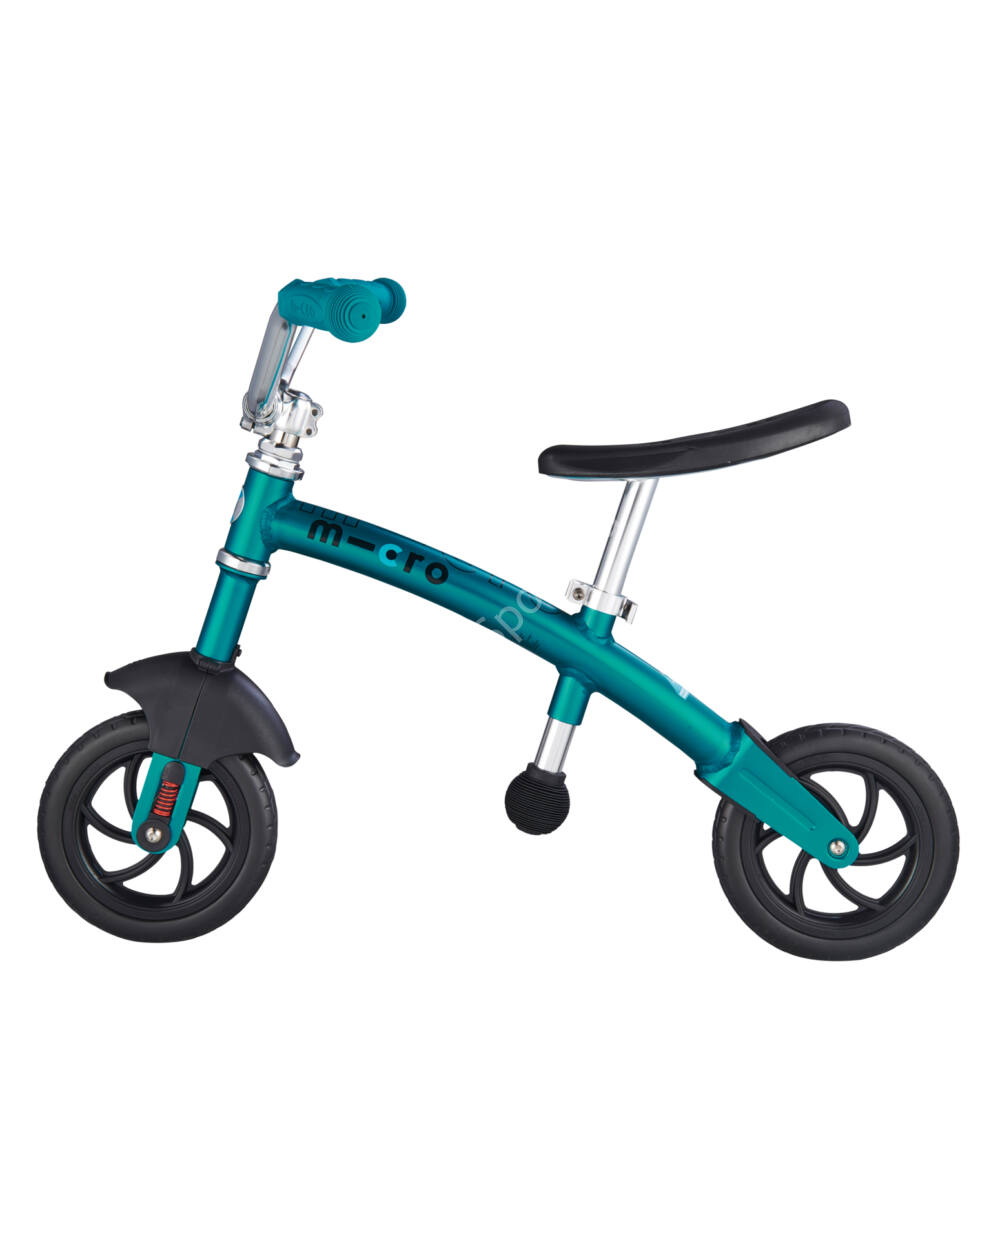 Micro 2in1 G-Bike Chopper Deluxe futóbicikli, aqua